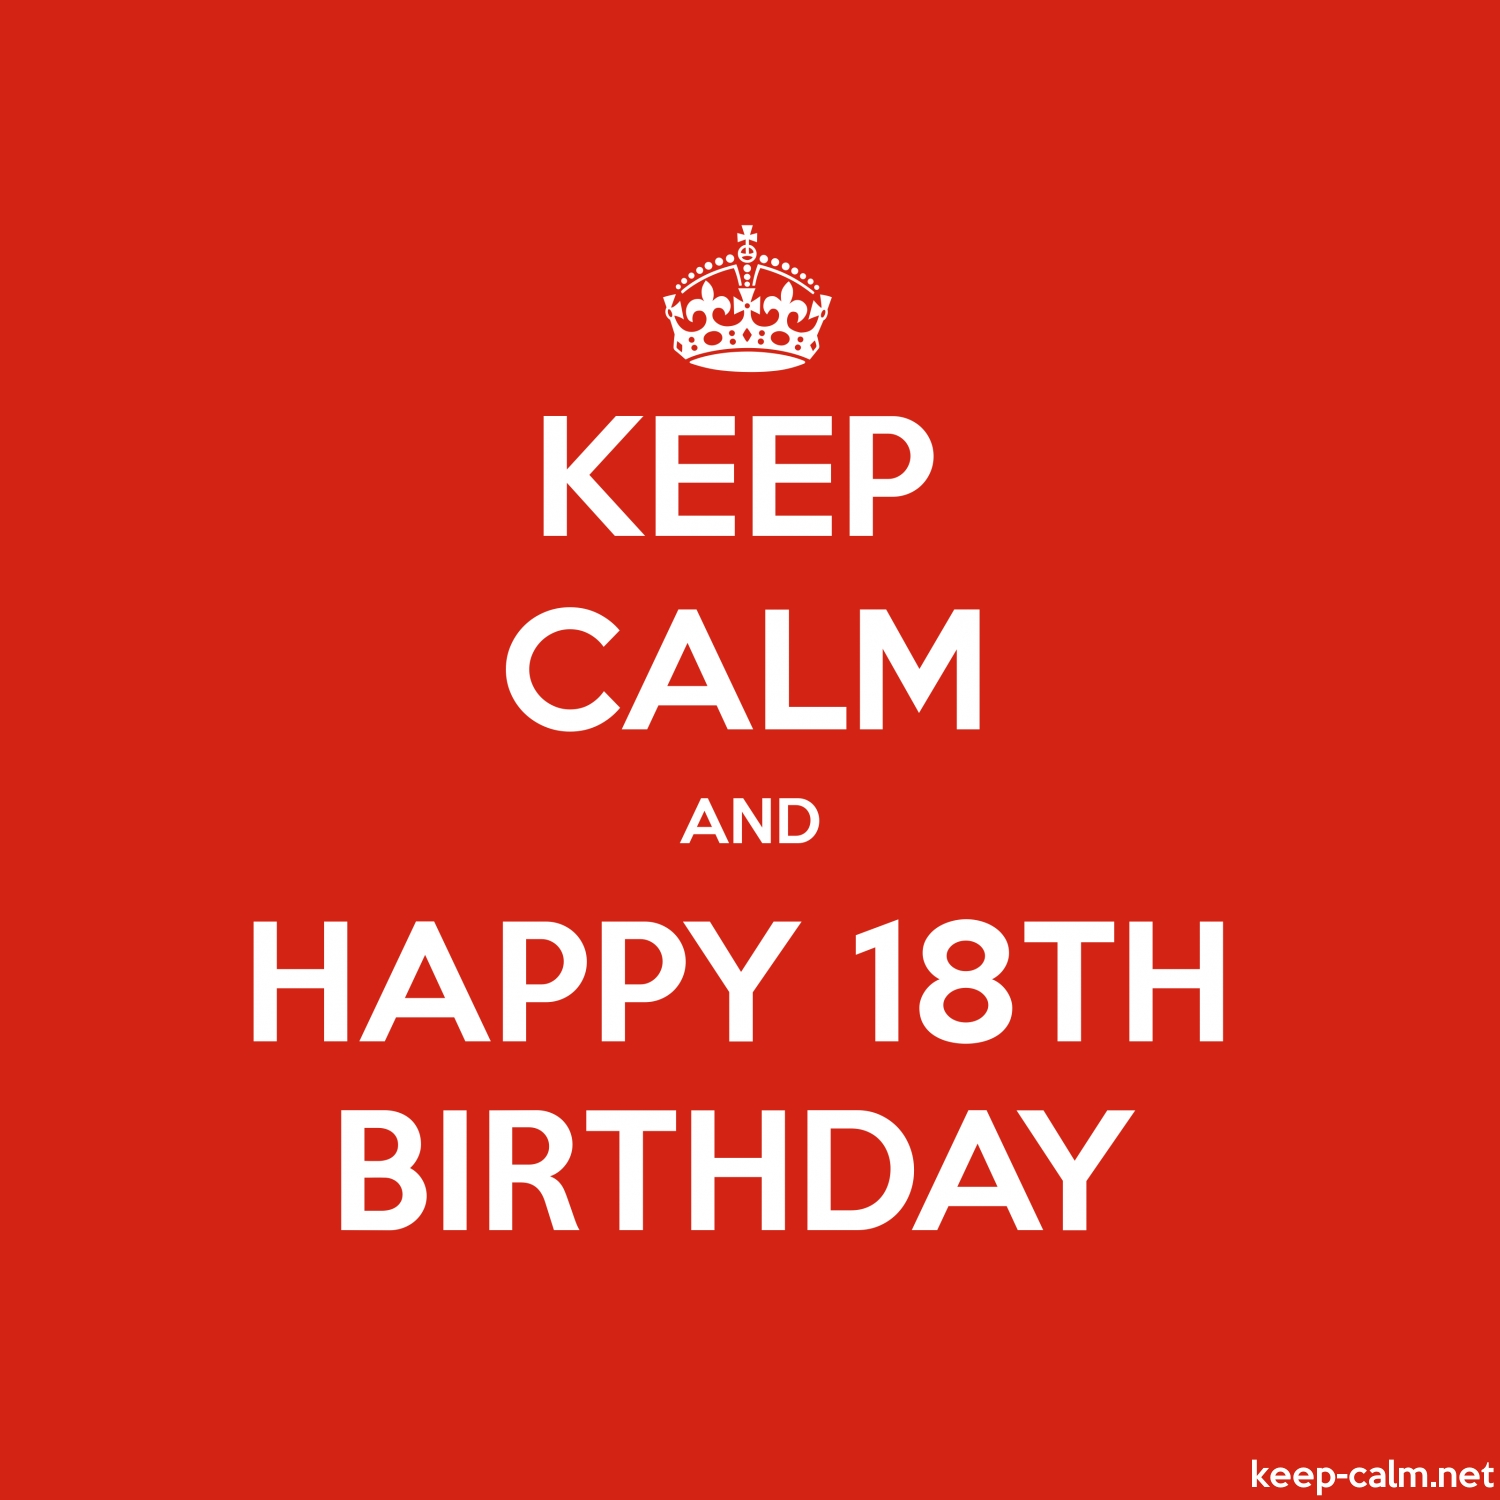 Keep calm and happy 18th birthday keep calm large square 1500x1500 altavistaventures Gallery